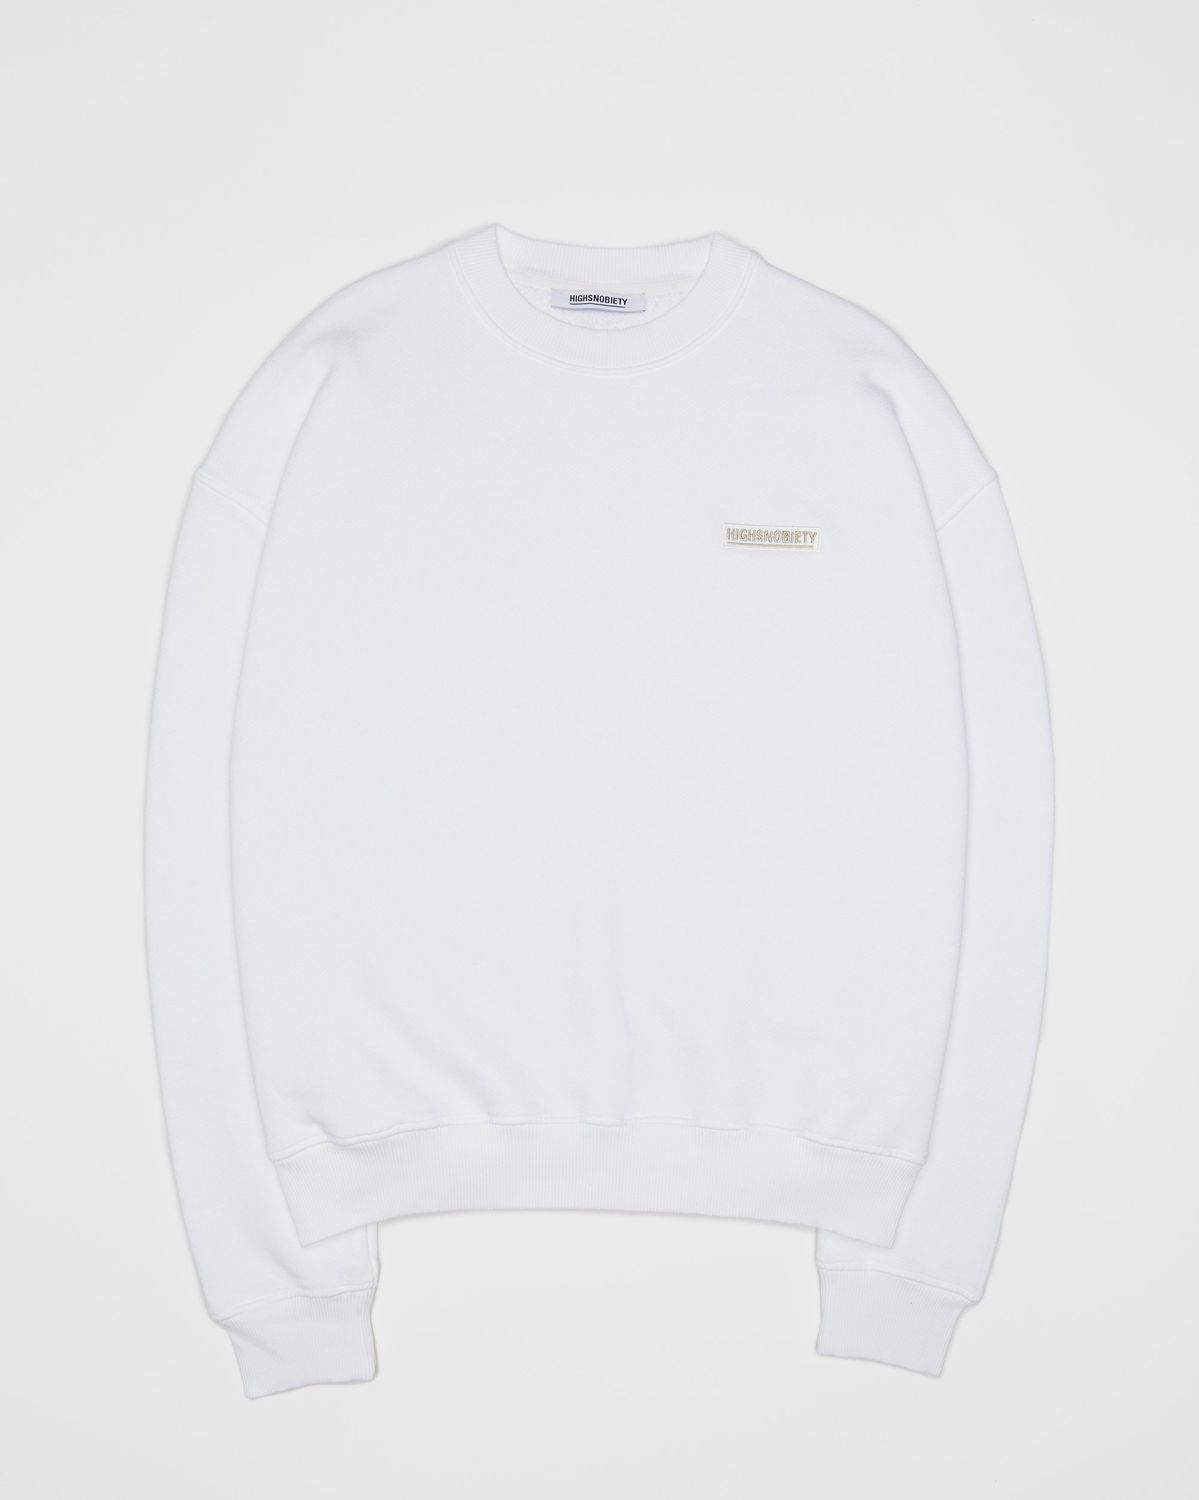 Highsnobiety Staples — Sweatshirt White - Image 1